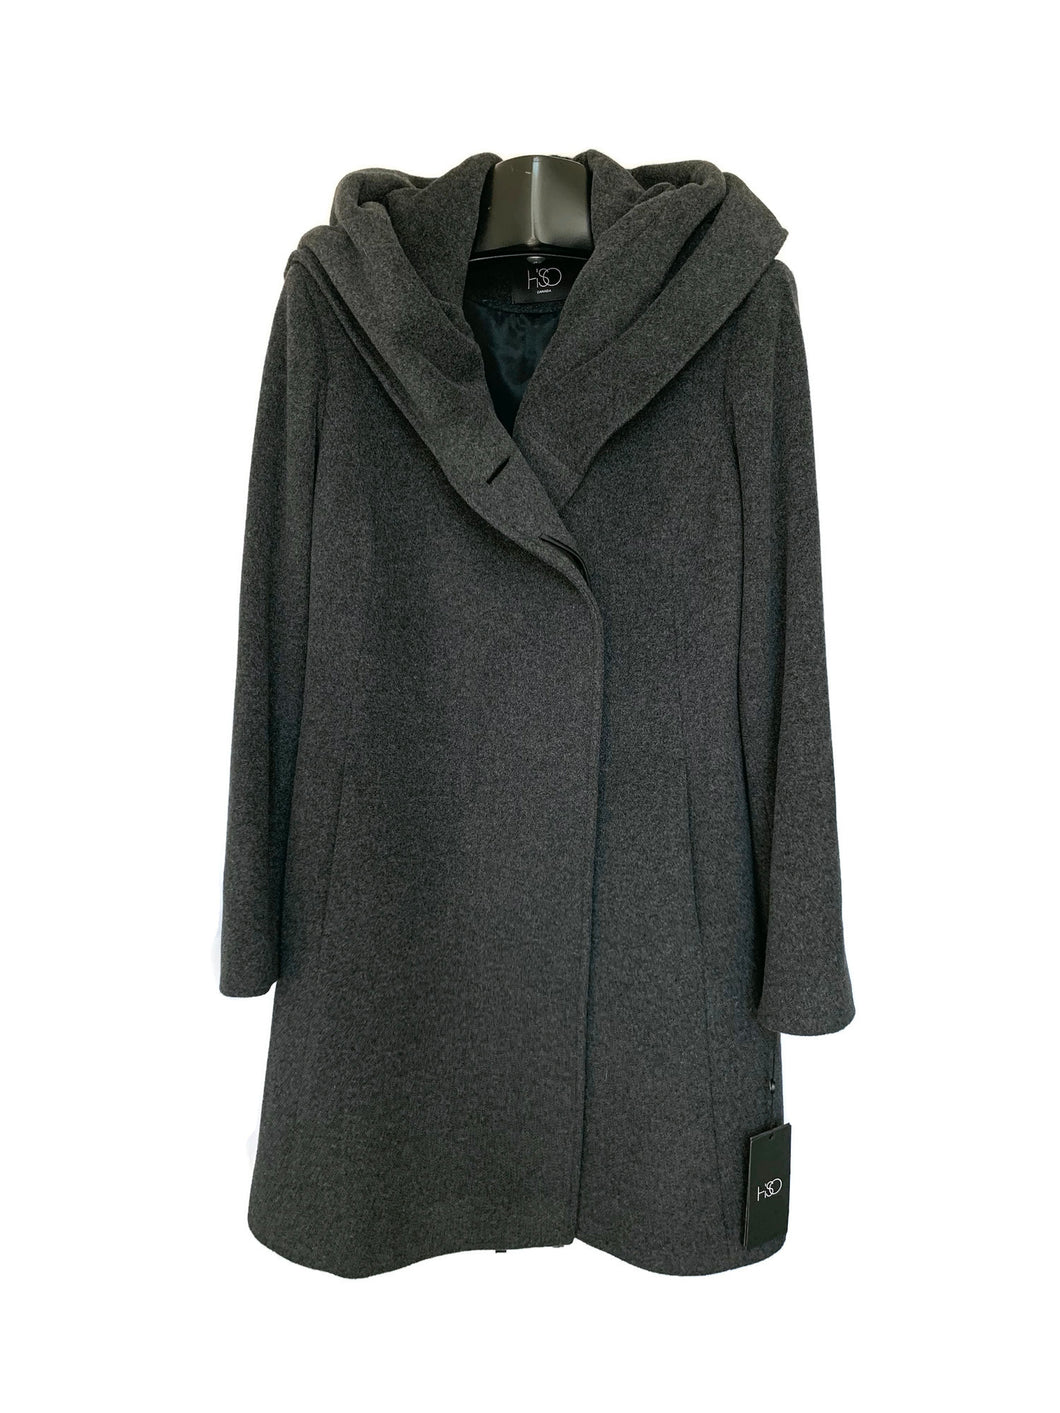 Charcoal Wool / Cashmere Coat W/ Collar/Hood